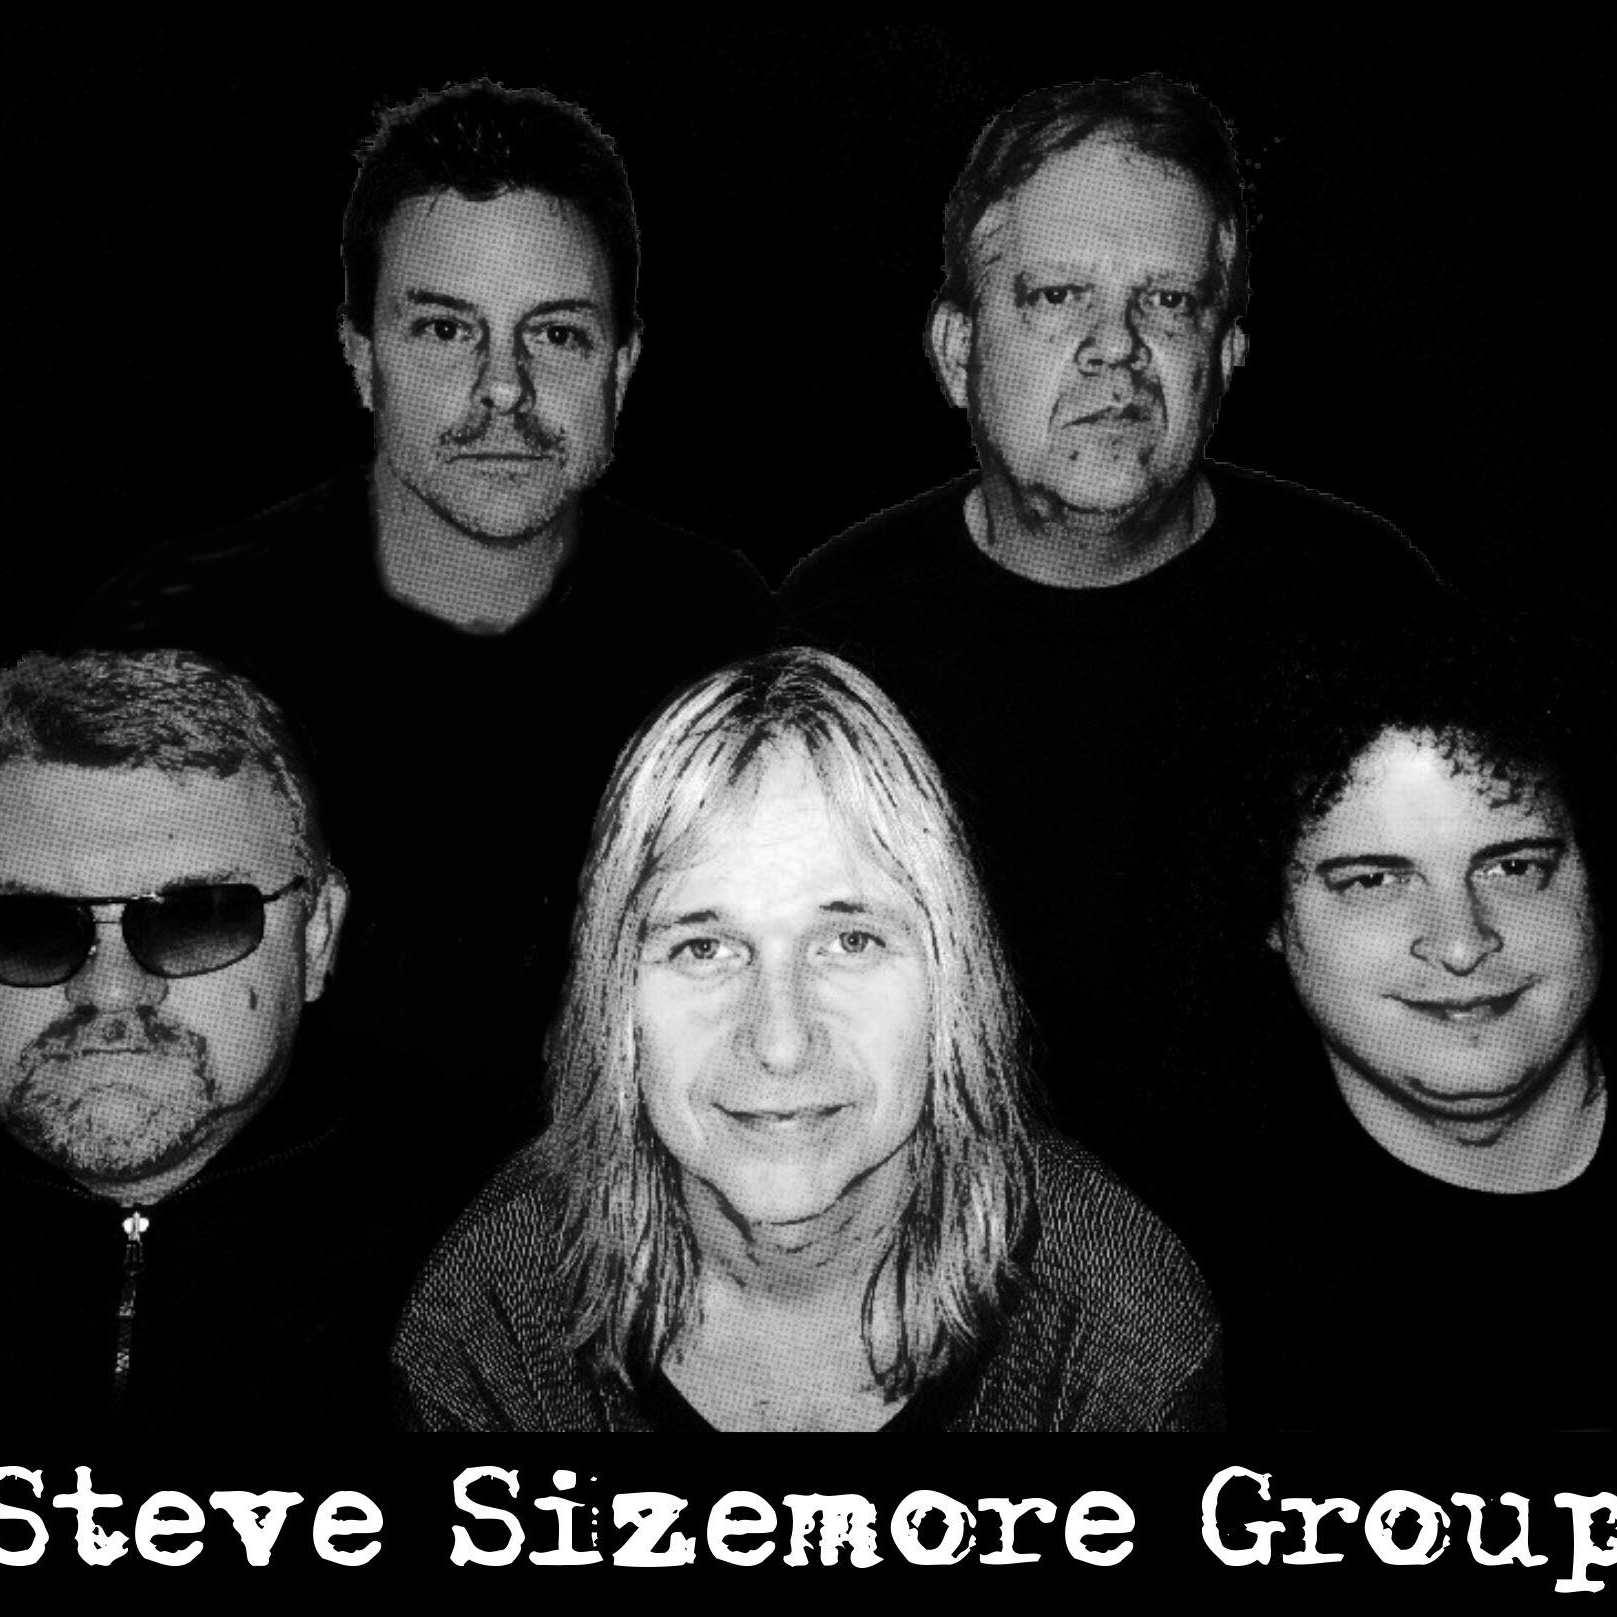 Steve Sizemore Group -